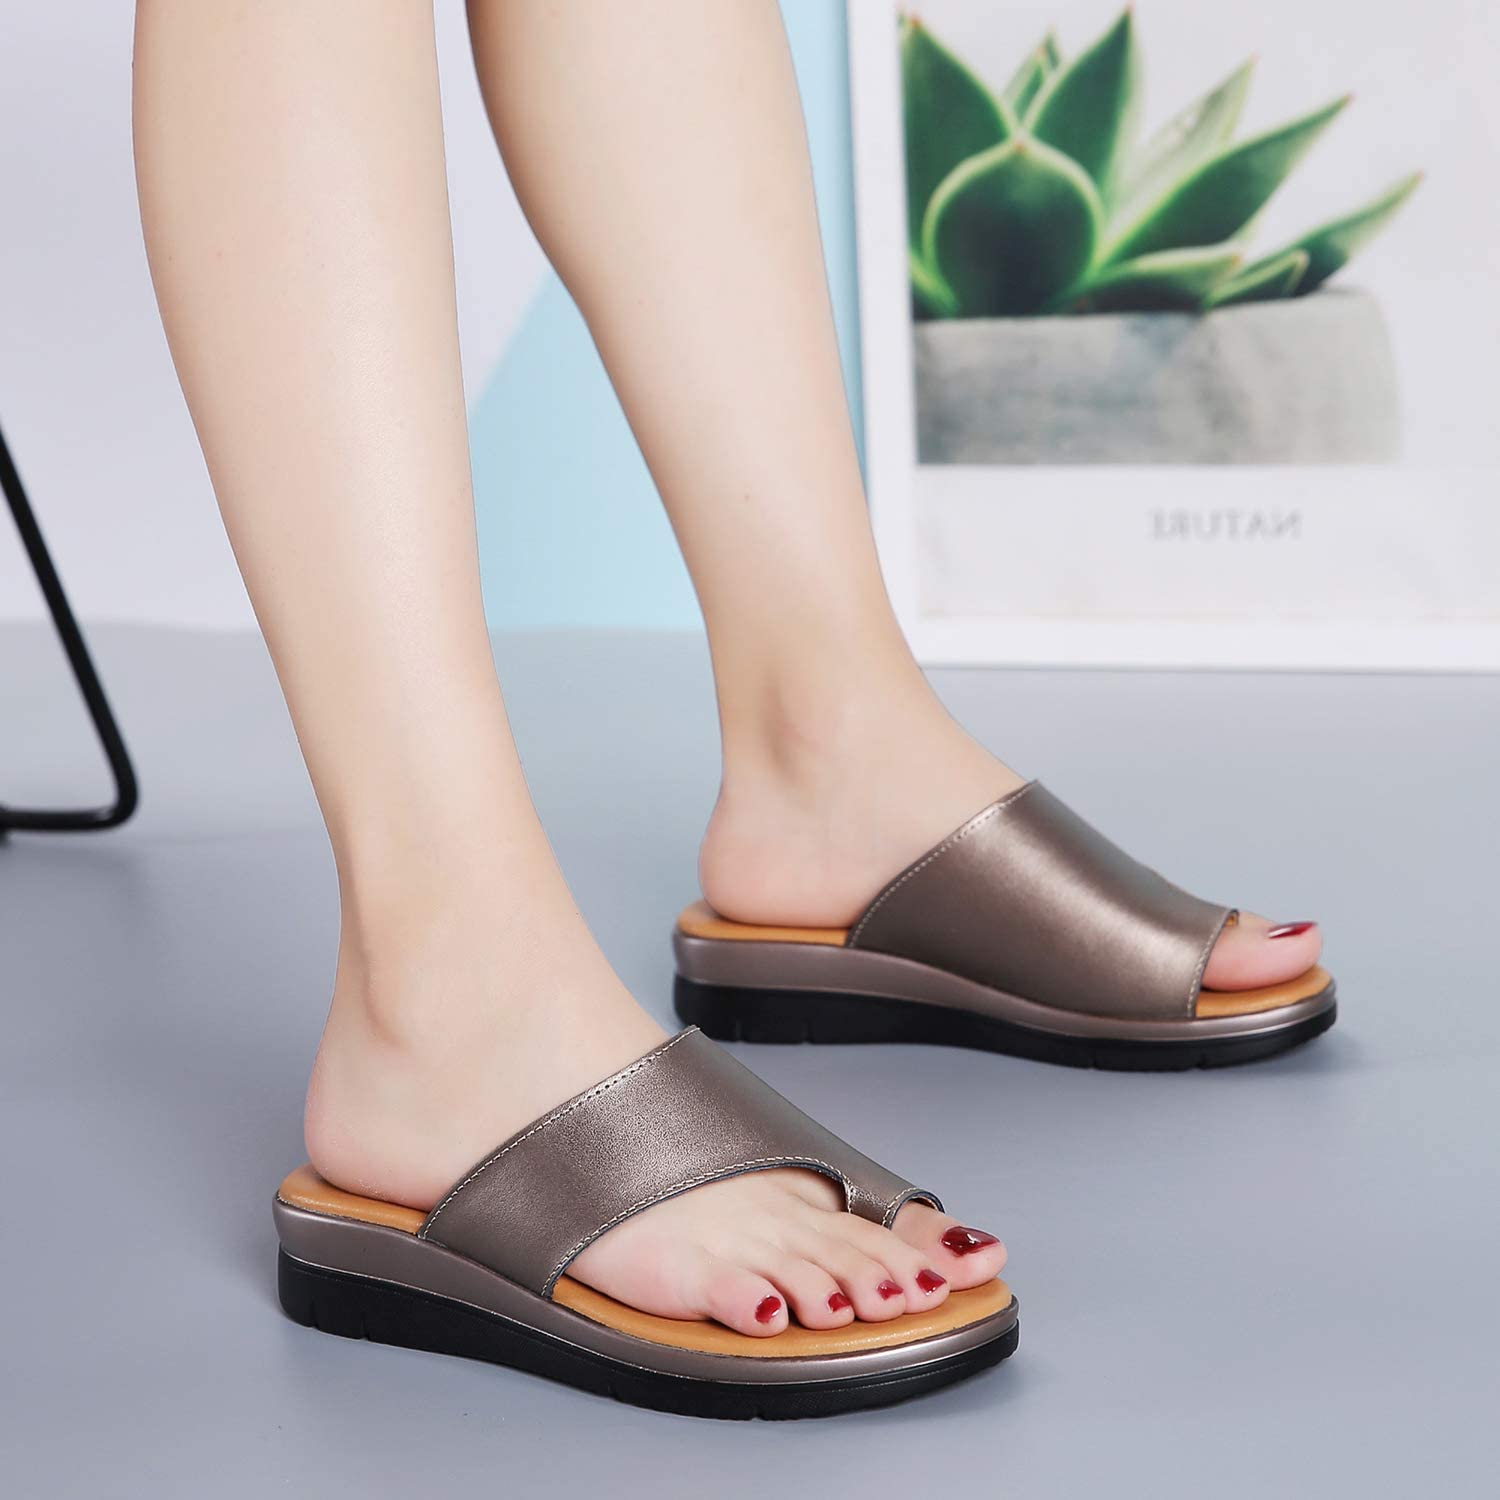 Bunion Sandals for Women Comfy Bunion Corrector Platform Shoes BSP-2 Genuine Leather Women Flip-Flop Light Weight Ladys Shoes Wedge Sandals Size 5.5-10.5 Black Gold Brown White